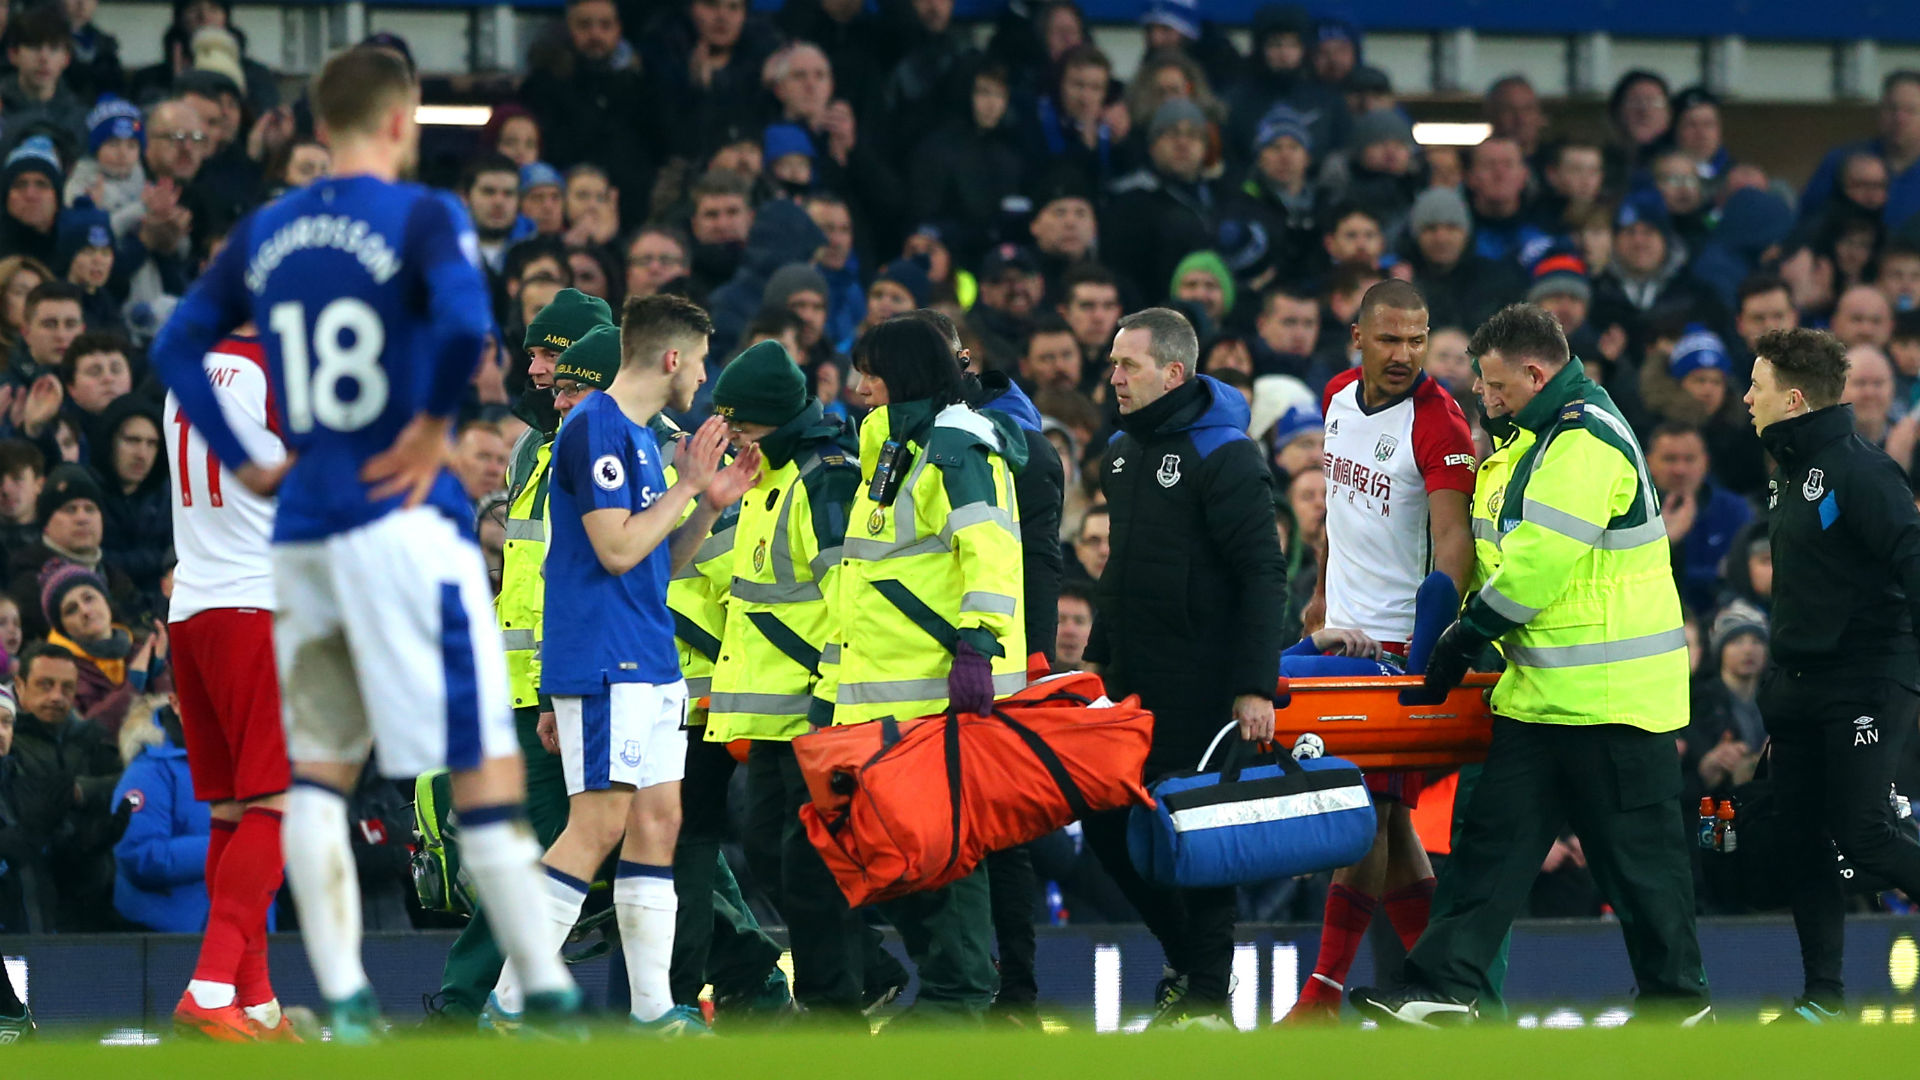 Everton midfielder James McCarthy suffers suspected double leg break